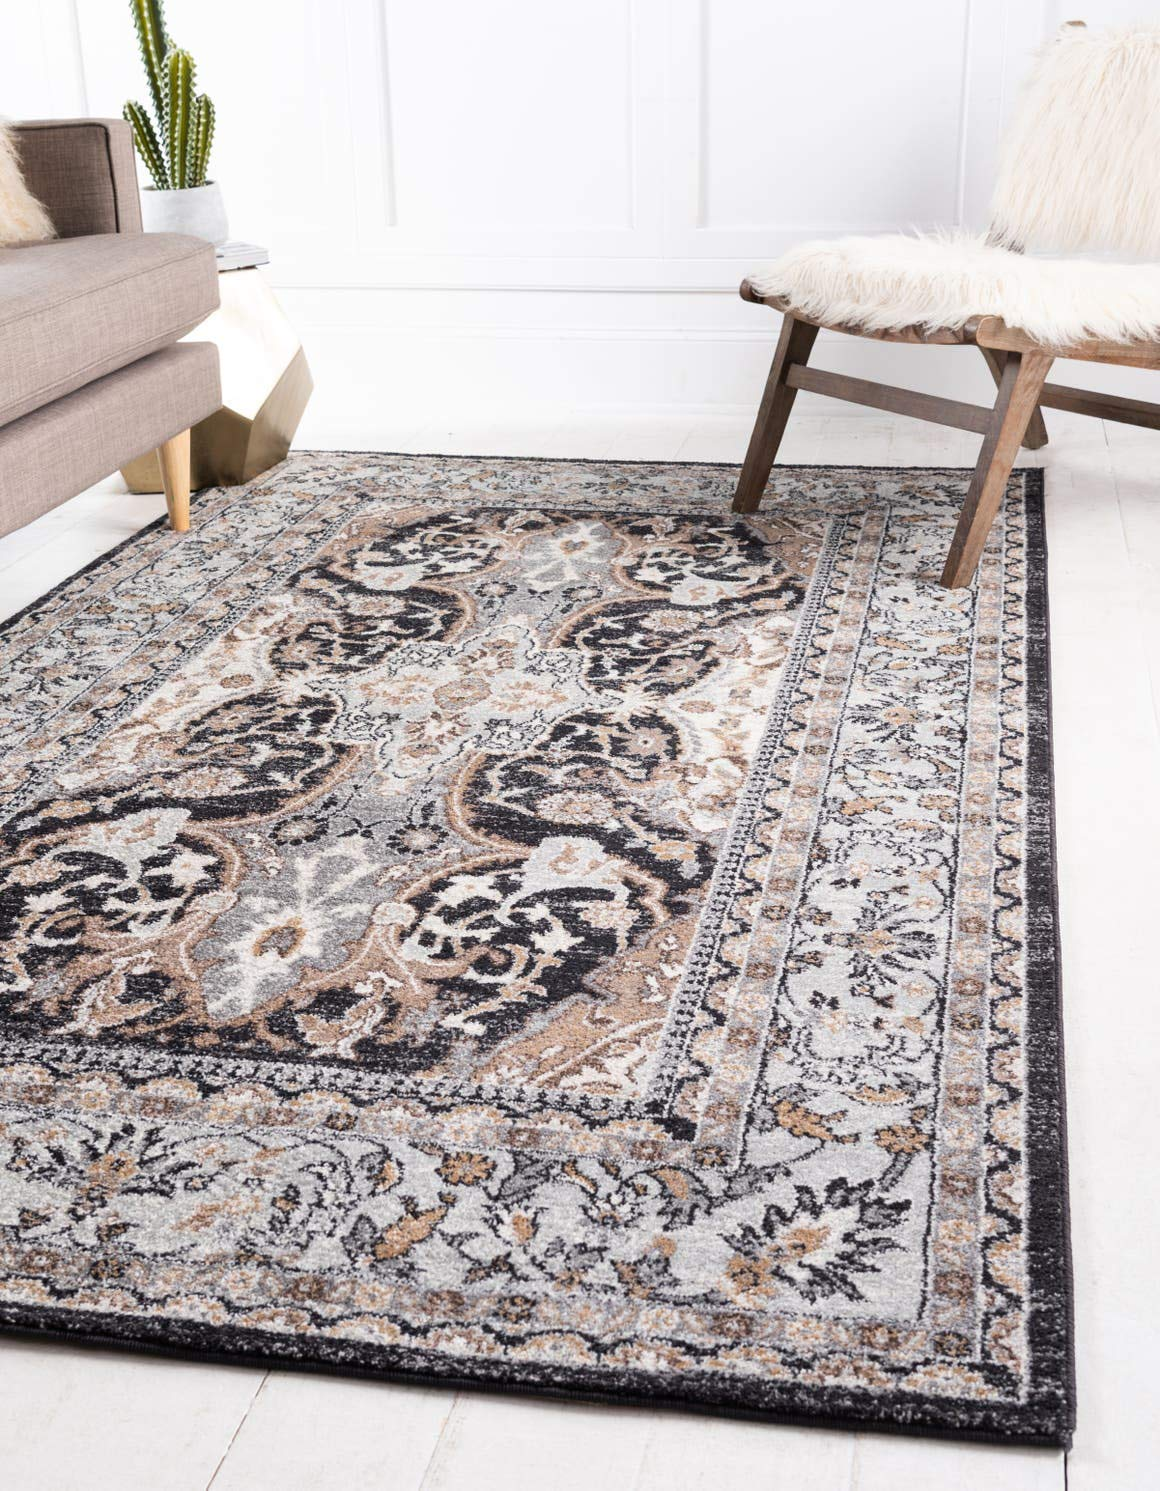 Unique Loom Lyon Collection Modern Abstract Ivory Area Rug 4 0 x 6 0